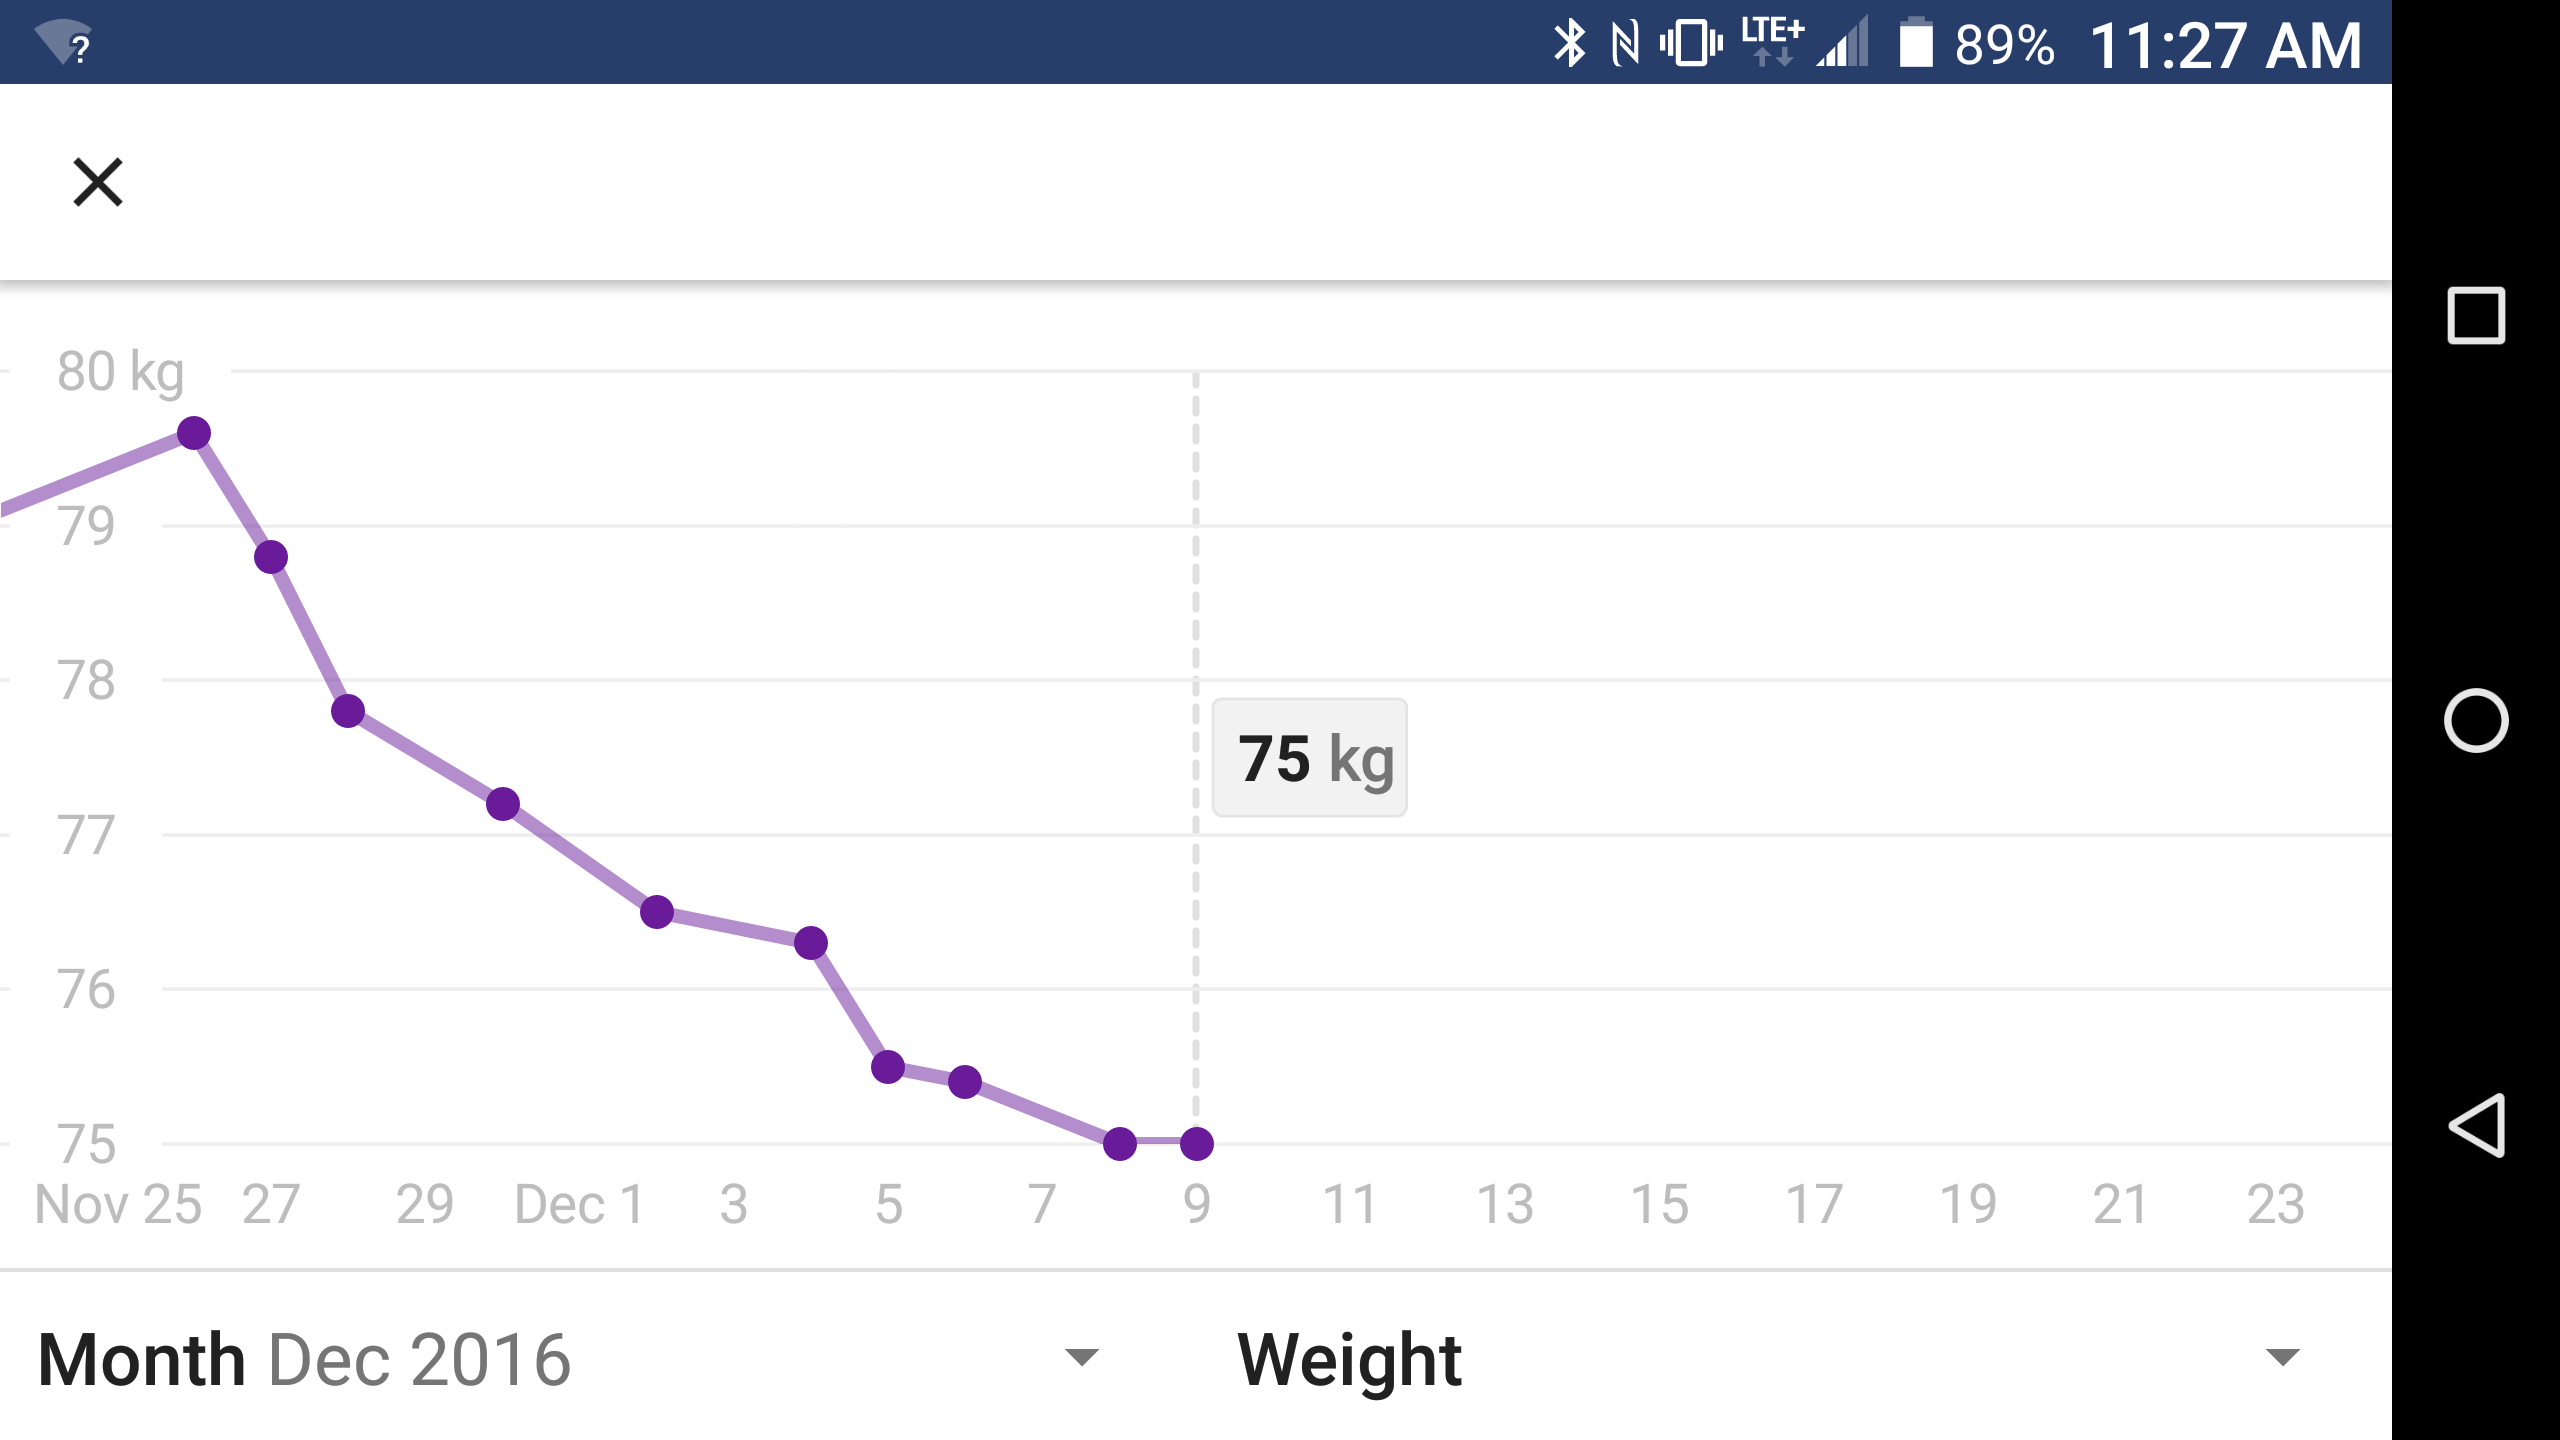 Lost 10 lbs since last Wed.